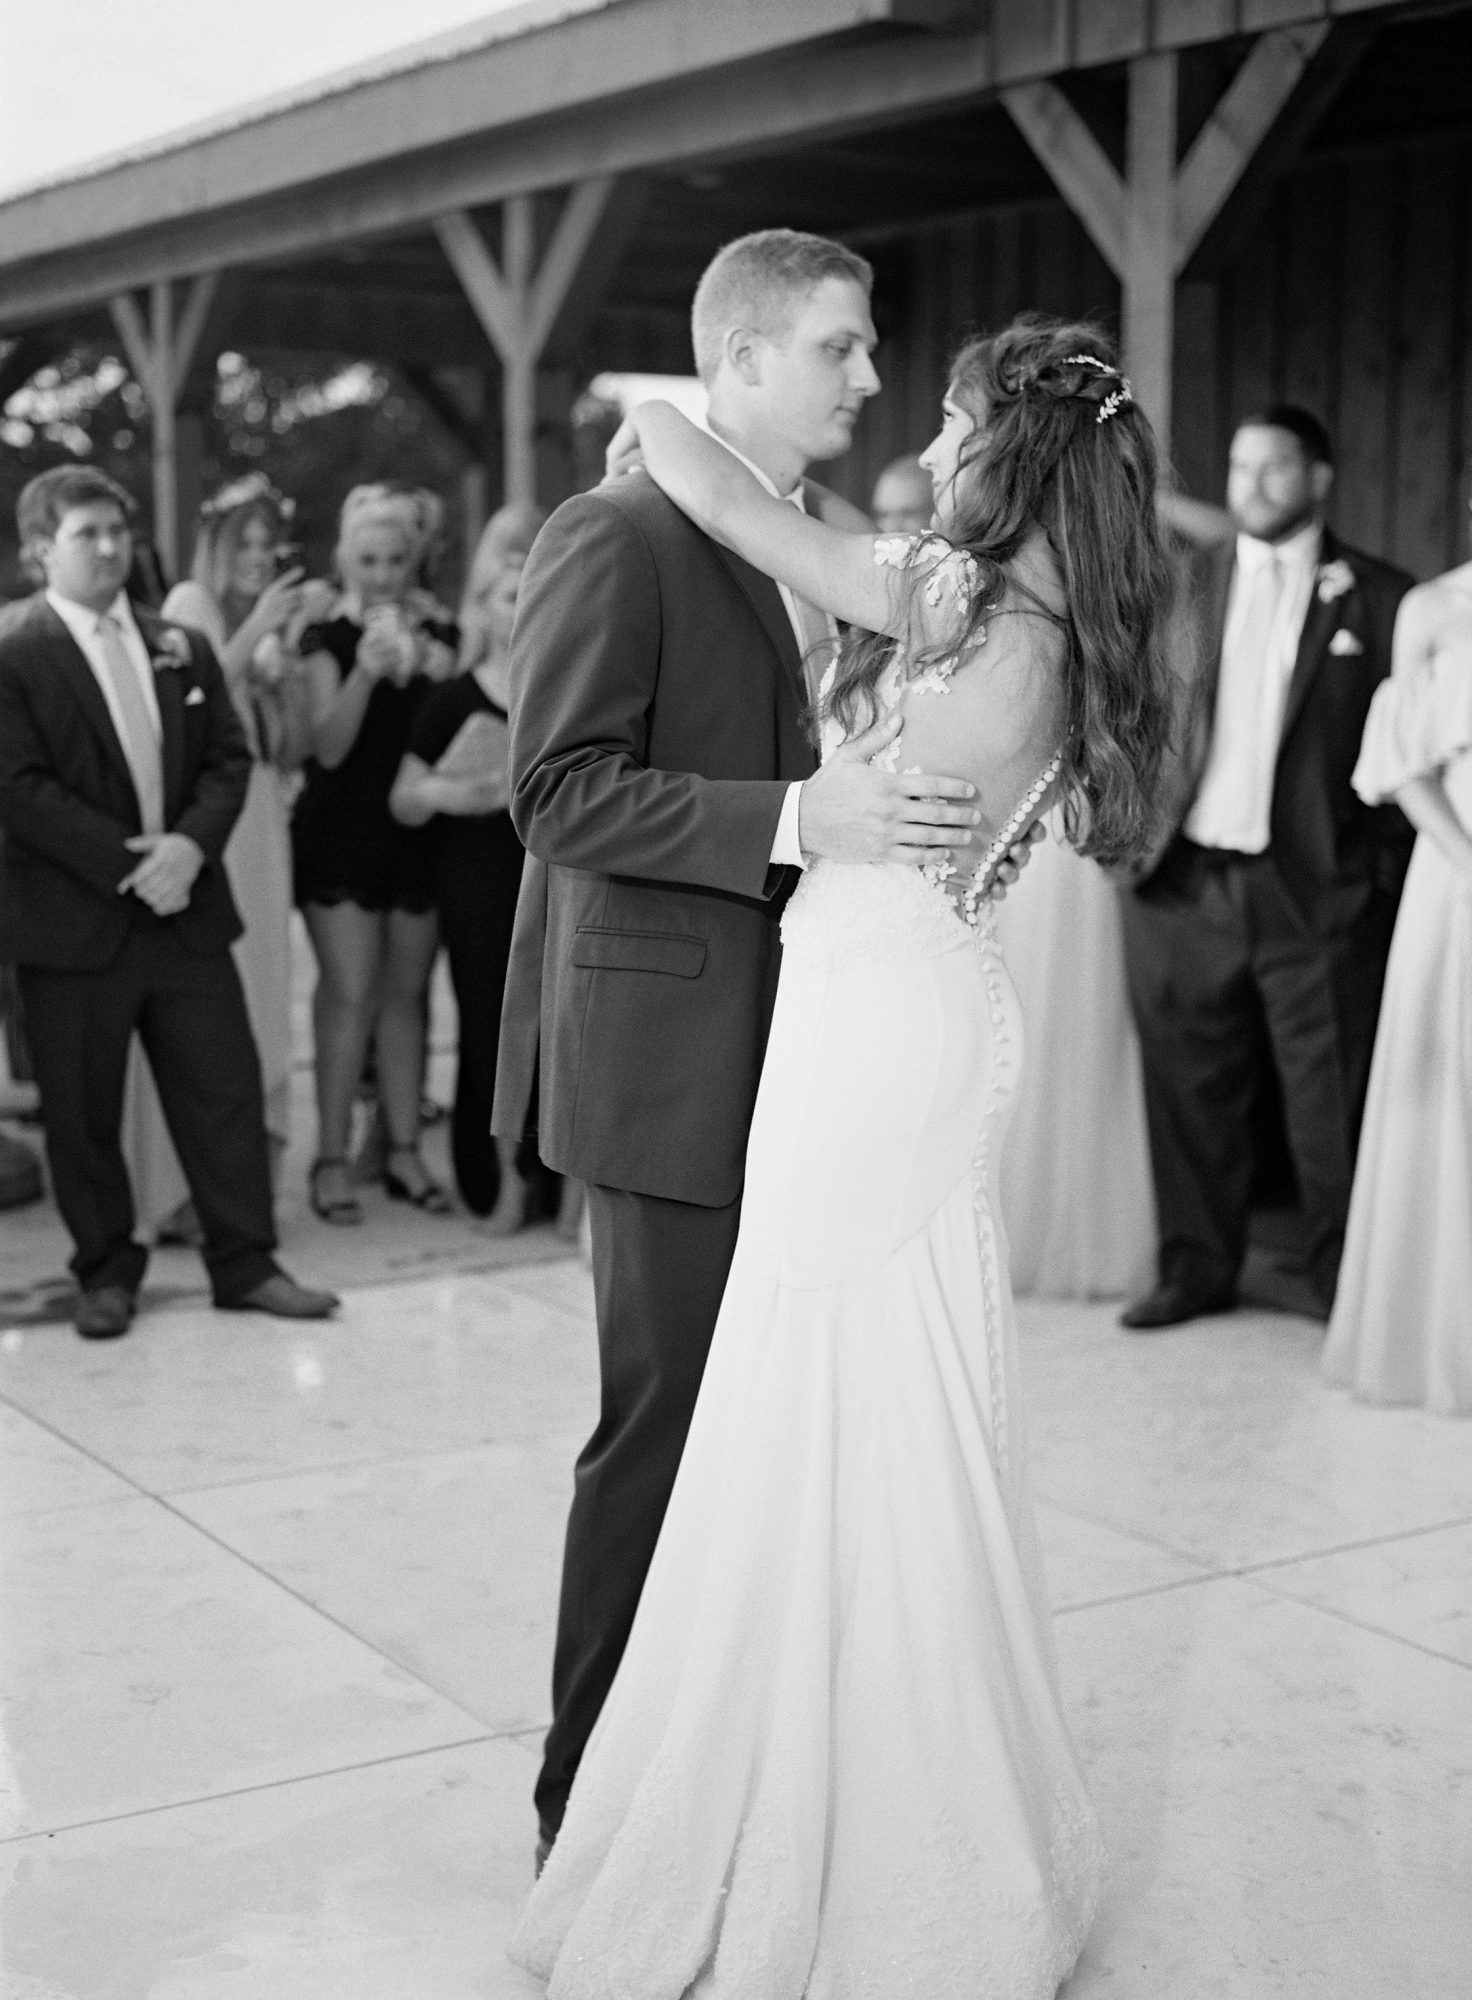 wedding couple first dance black and white photo